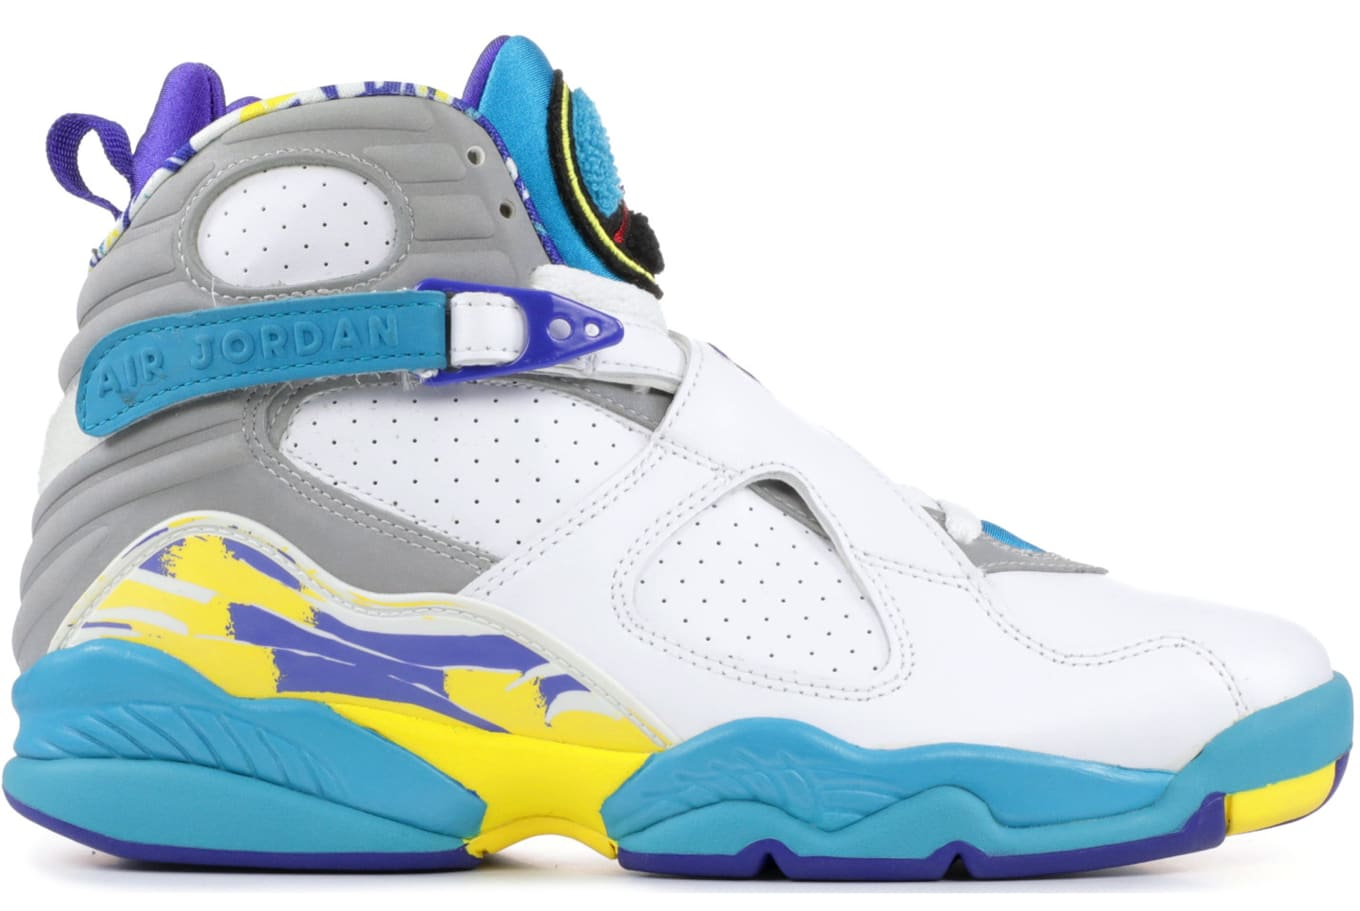 490b27dfd77d Air Jordan 8 Retro Women s  Aqua  Release Date July 2019